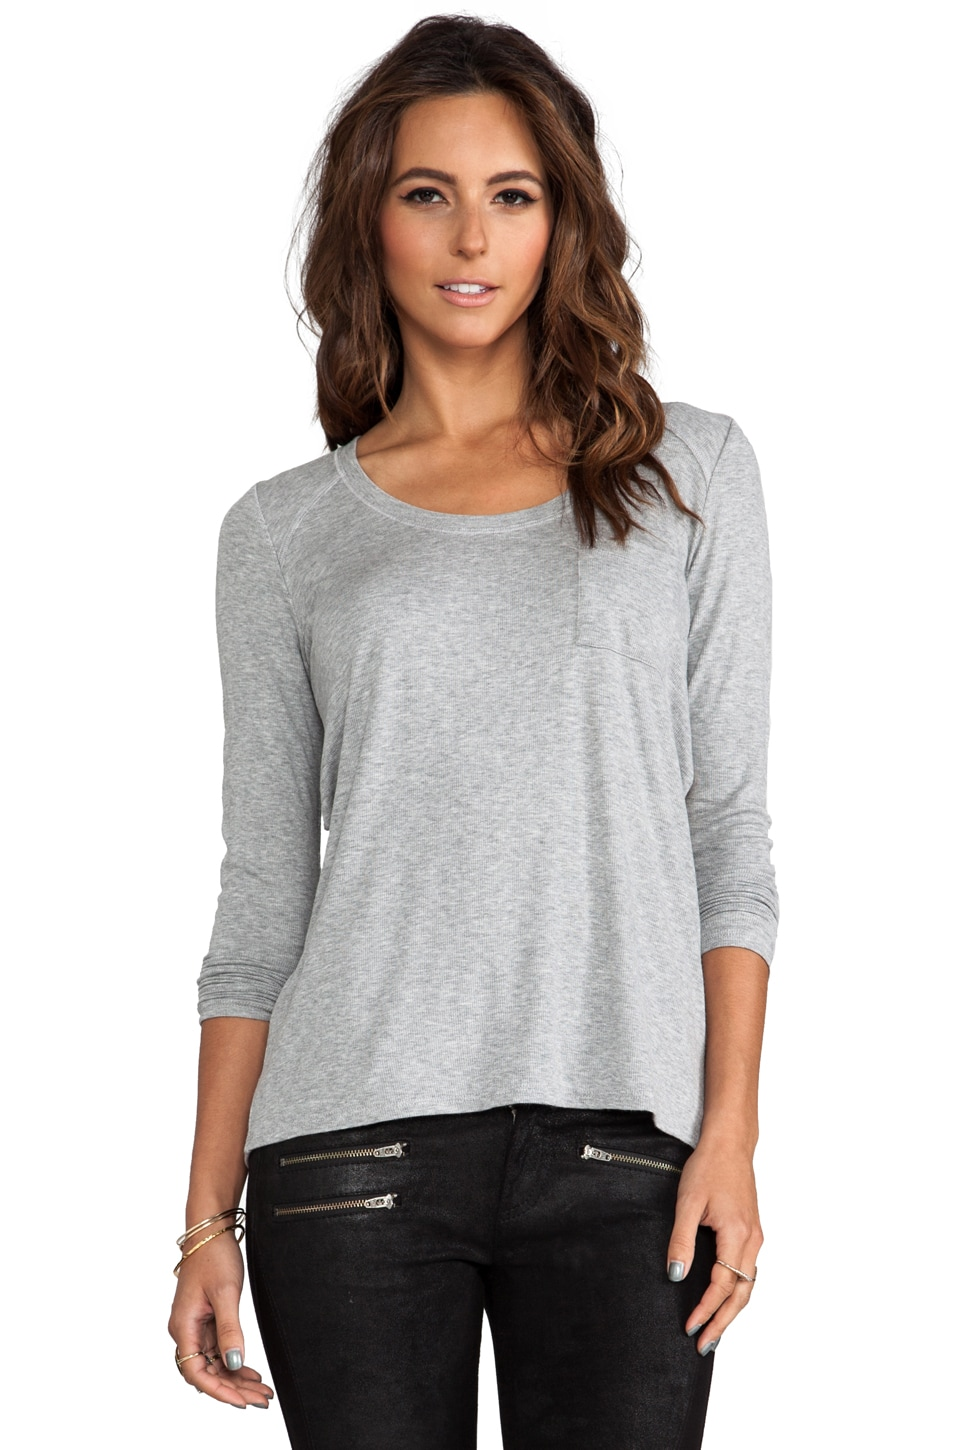 Heather Long Sleeve Cross Back Tee in Light Heather Grey